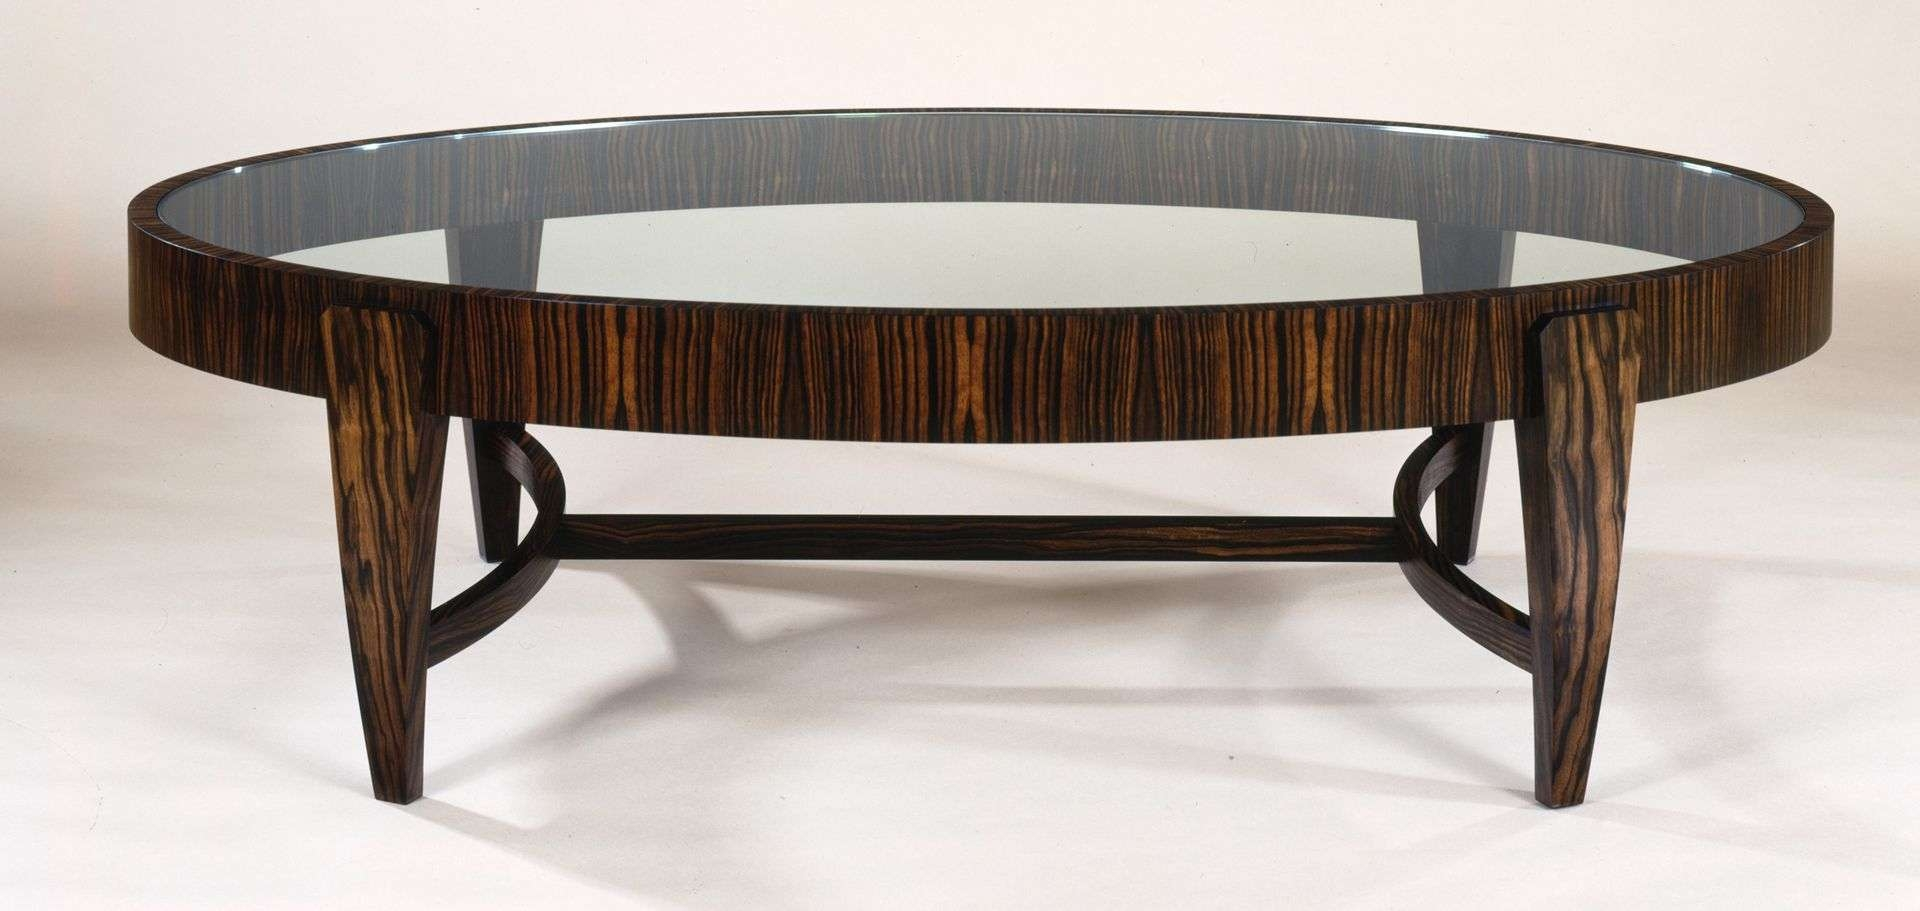 Gorgeous Oval Glass Coffee Table As Contemporary Furniture – Ruchi For Most Recently Released Oval Glass And Wood Coffee Tables (View 8 of 20)